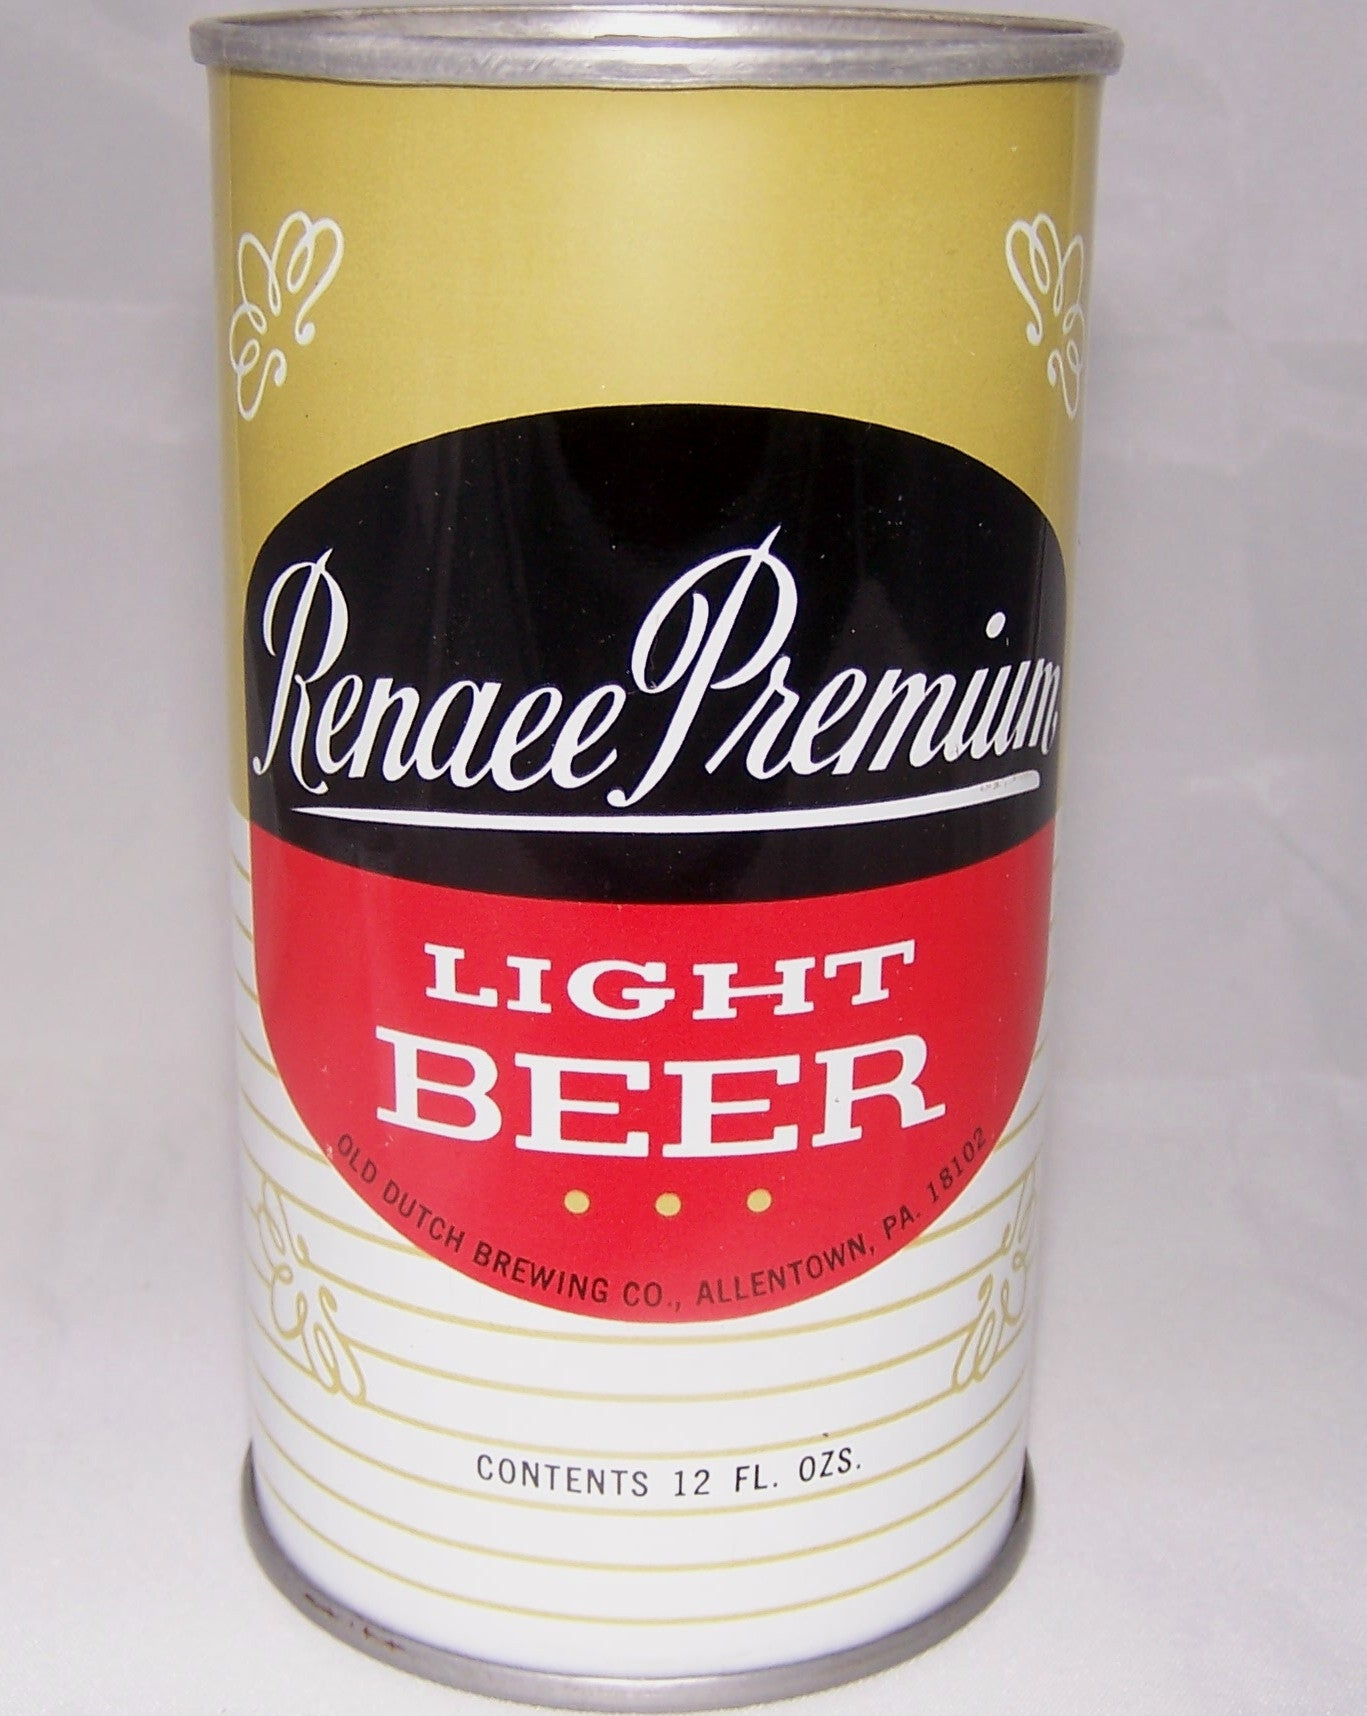 Renaee Premium Light Beer, USBC II 114-35, Grade 1/1+ Sold on 5/11/15